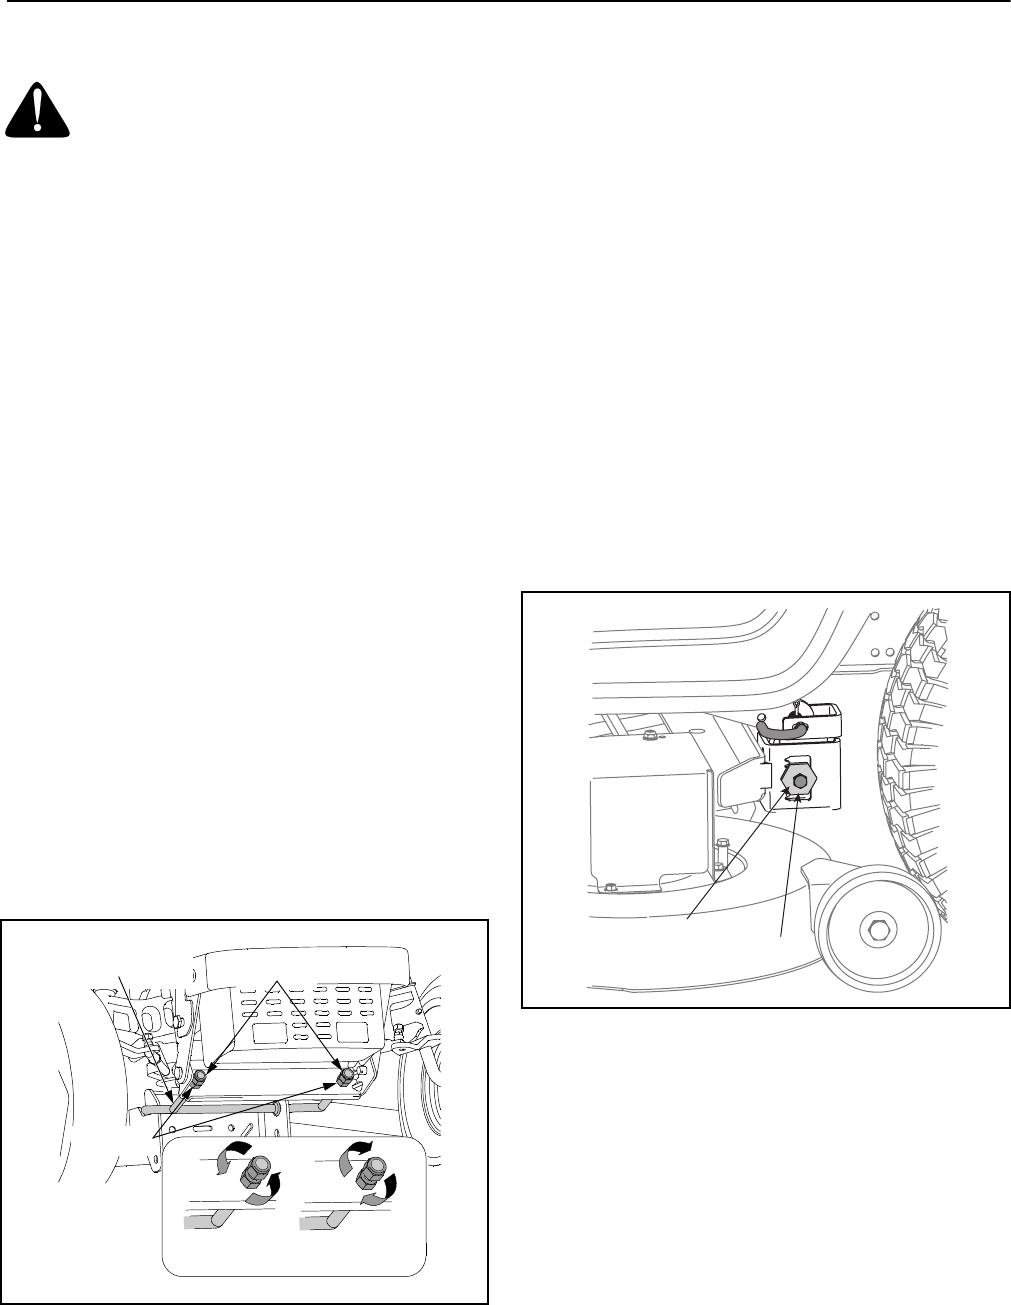 Cub Cadet Lt1042 Lt1046 Lt1045 Lt1050 Section 6 Making Wiring Diagram Leveling The Deck